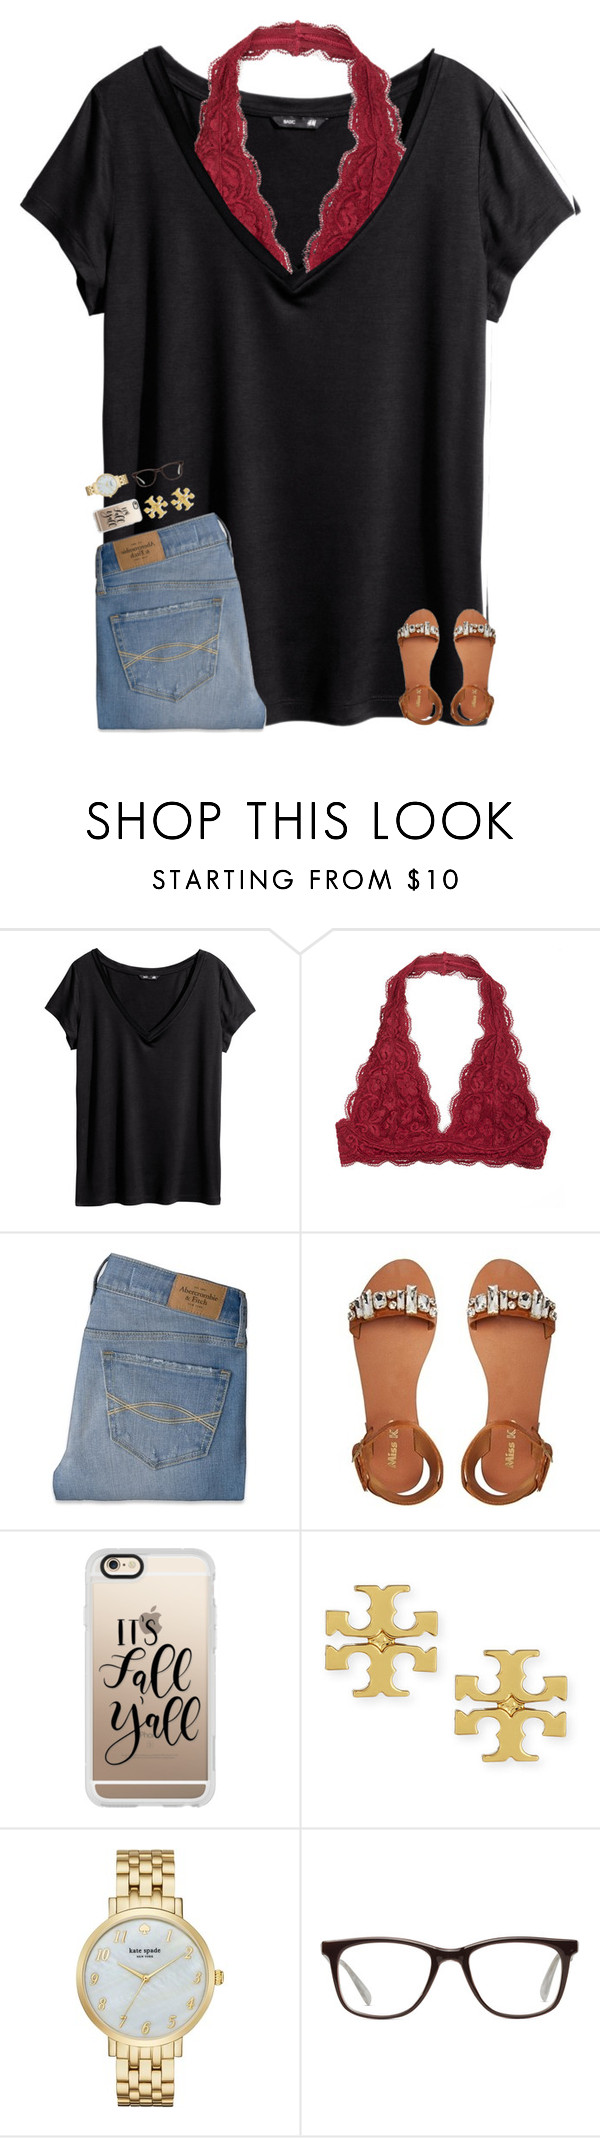 """It's the weekend!🌻🌞🍉"" by breezerw ❤ liked on Polyvore featuring H&M, Abercrombie & Fitch, Miss KG, Casetify, Tory Burch, Kate Spade and GlassesUSA"